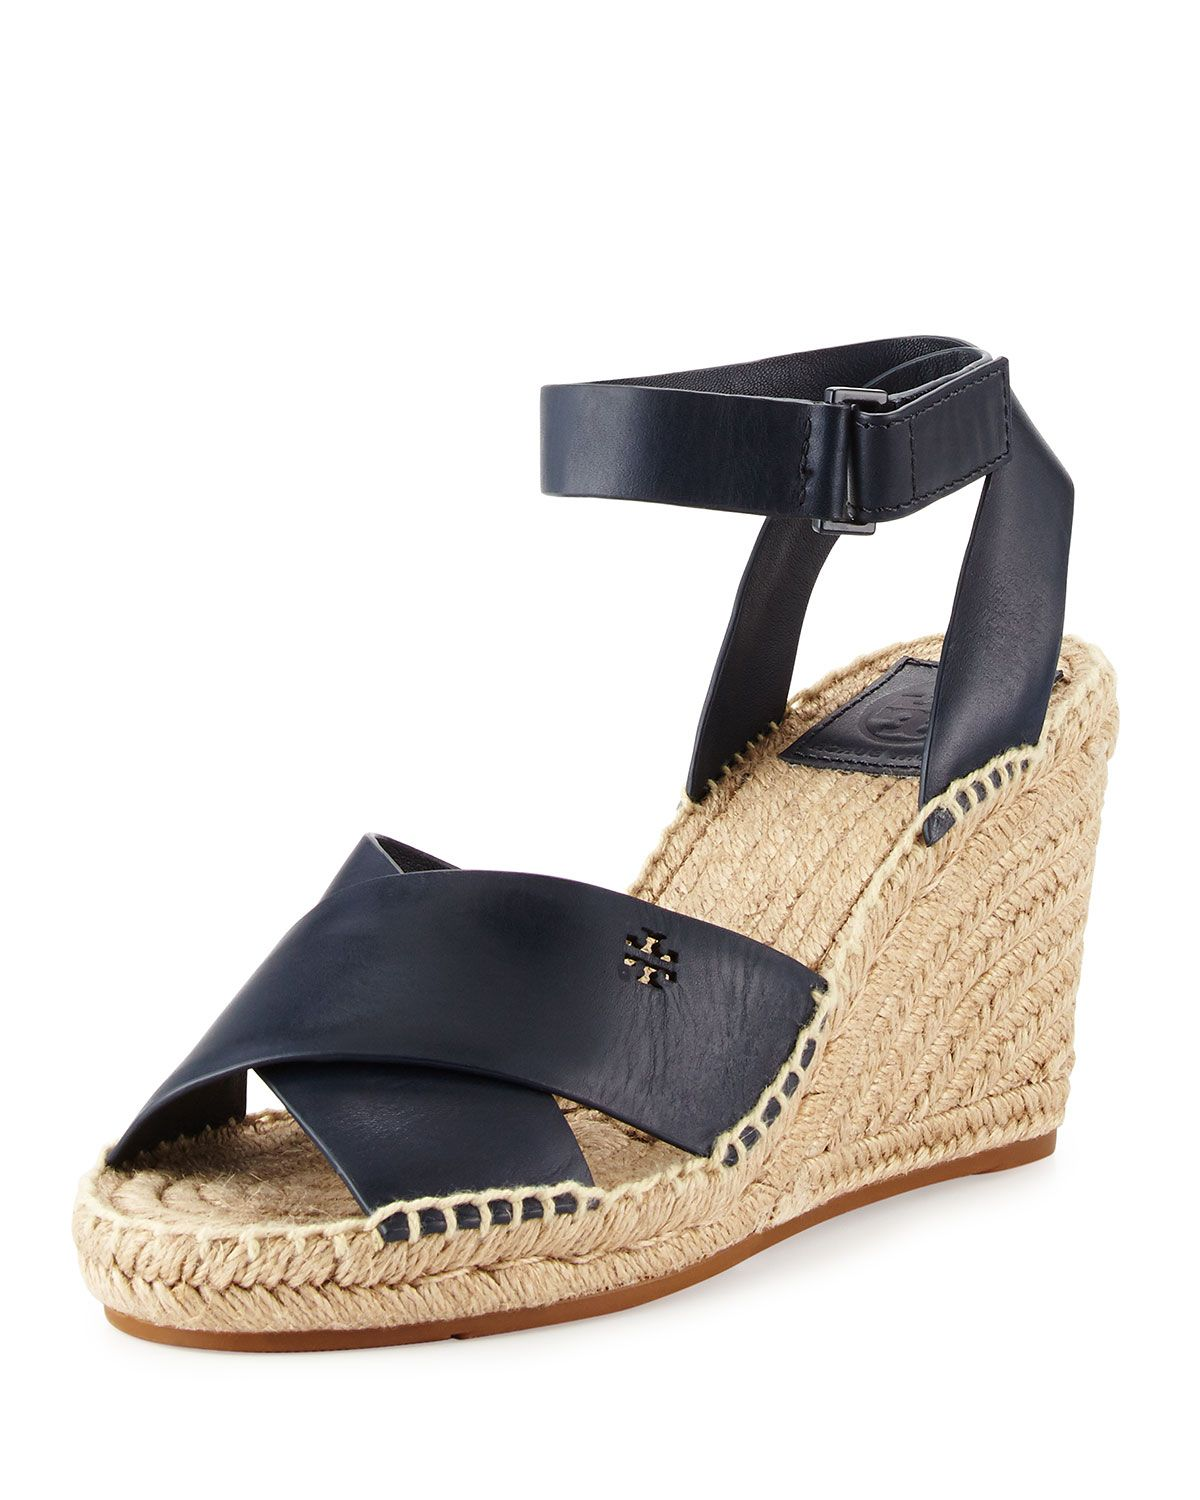 6e5624f8b72 Tory Burch Bima Leather Wedge Espadrille Sandal